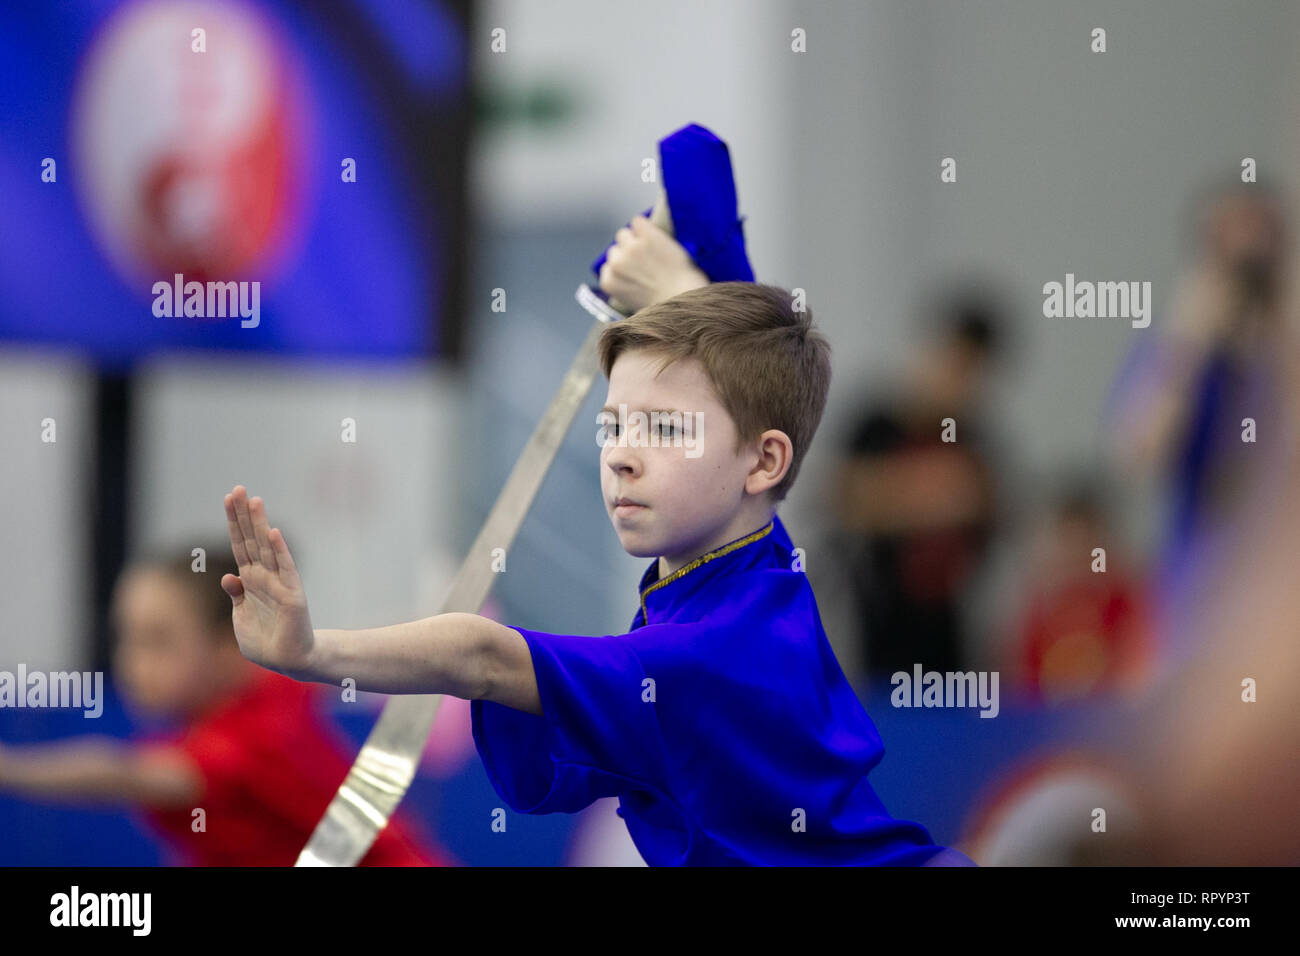 Moscow, Russia. 23rd Feb, 2019. A competitor performs during the opening ceremony for the Moscow Wushu Stars 2019 competition in Moscow, Russia, on Feb. 23, 2019. Credit: Bai Xueqi/Xinhua/Alamy Live News Stock Photo